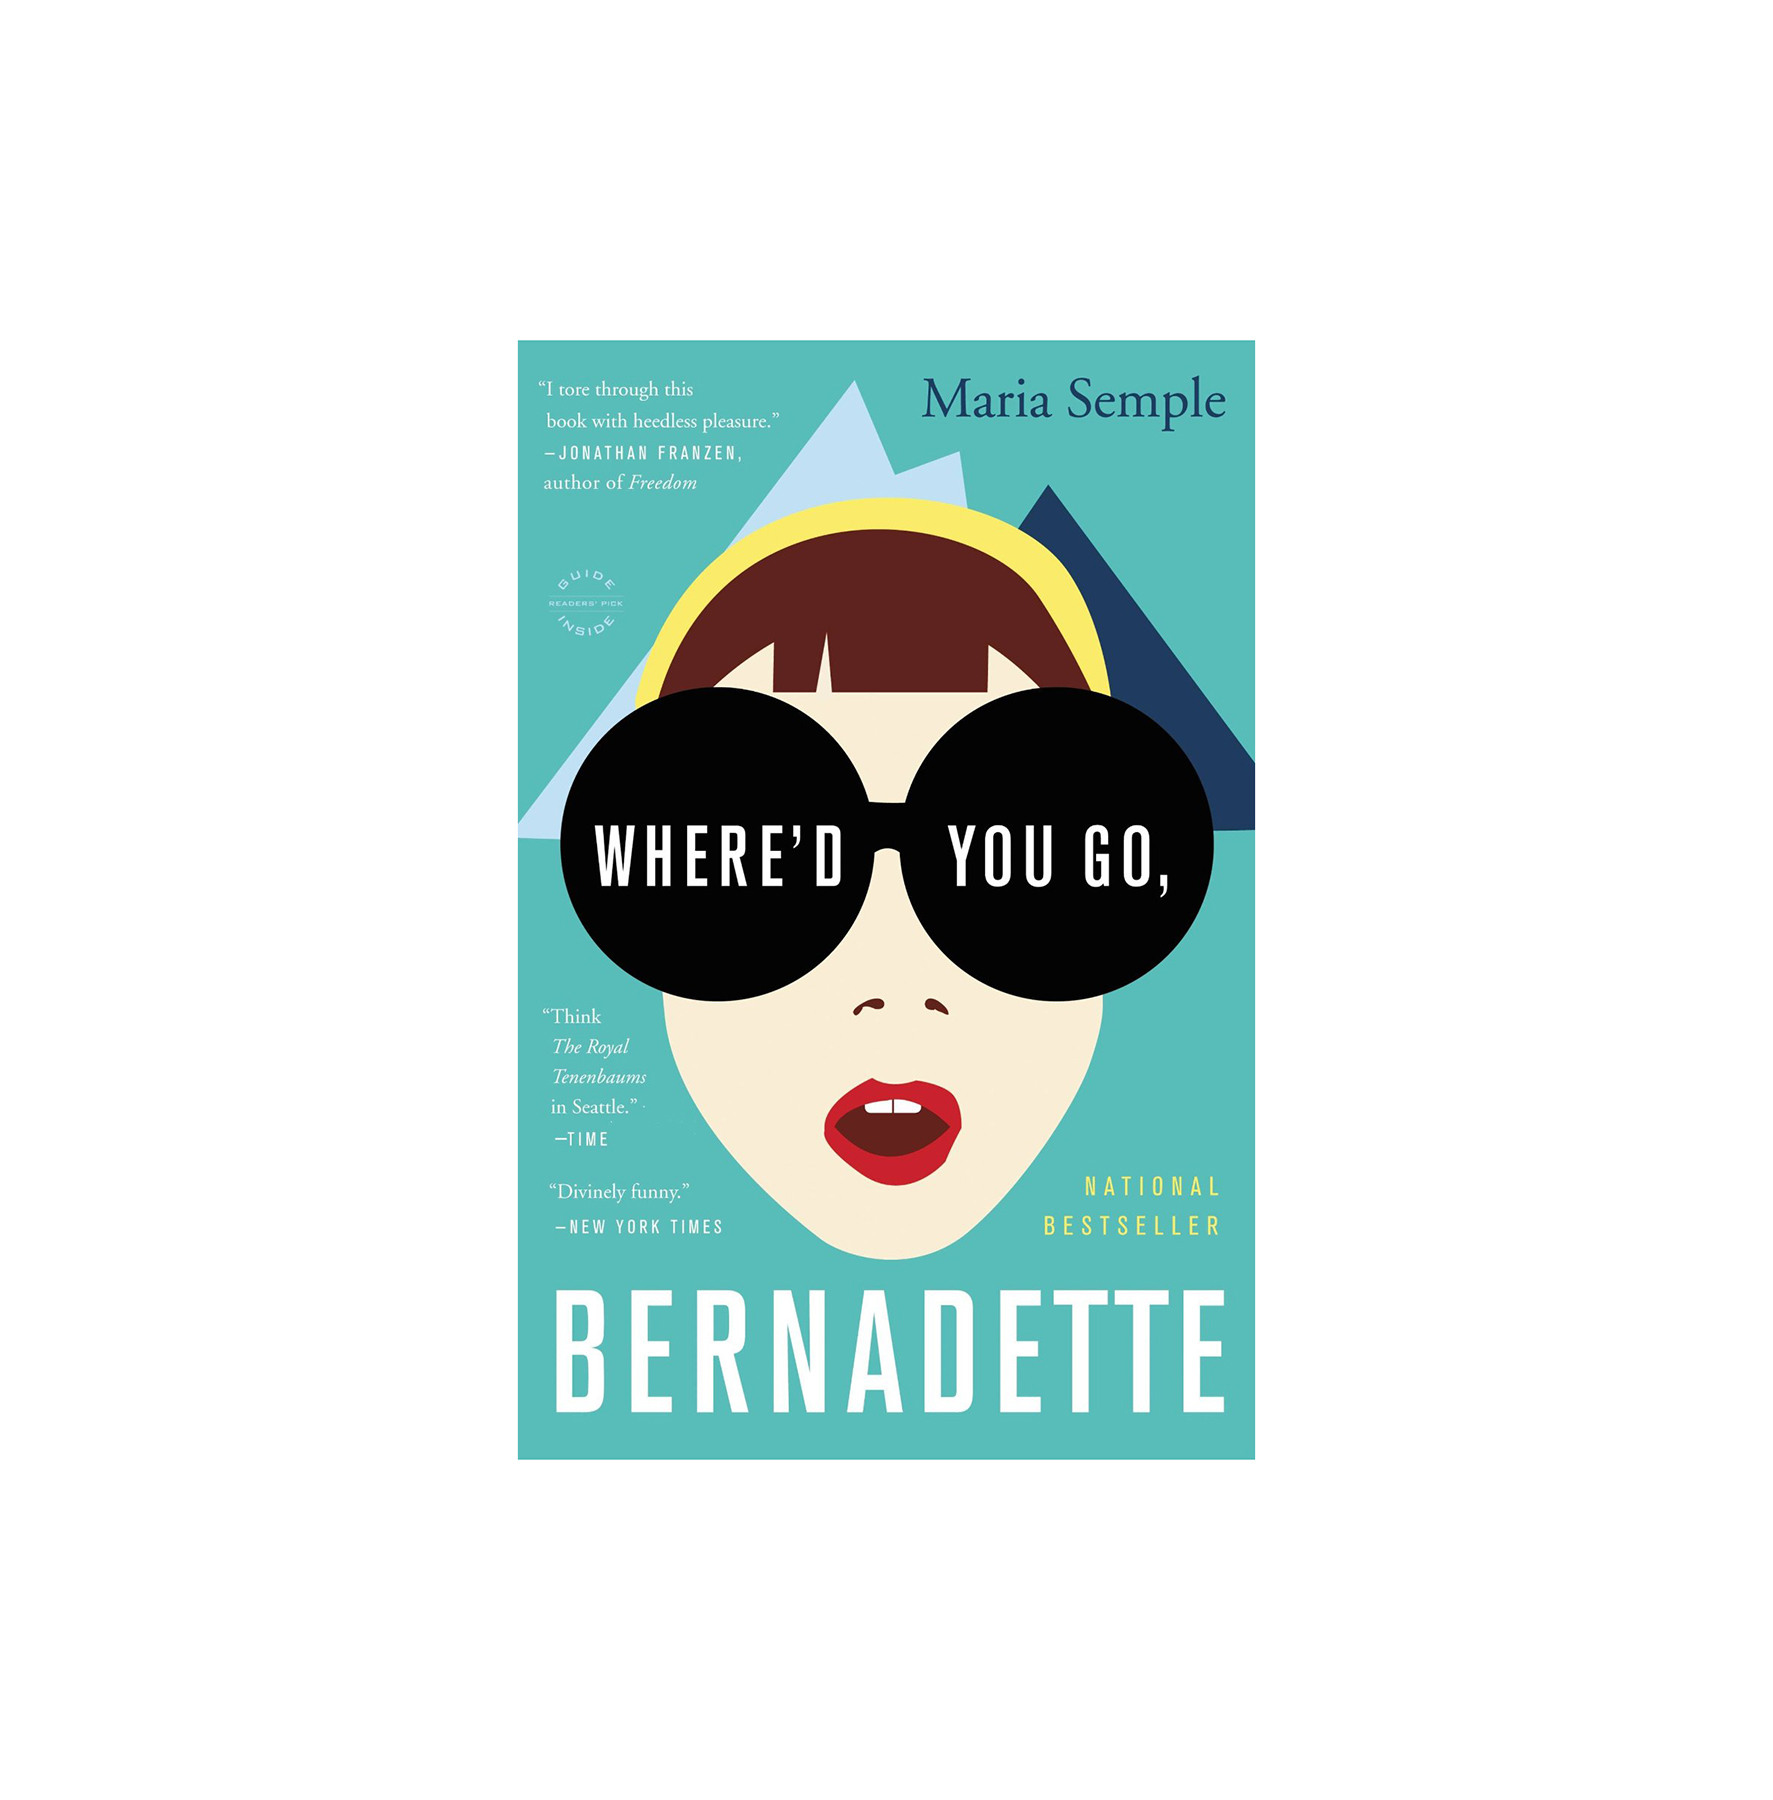 Where'd You Go Bernadette, by Maria Semple (Gilmore)